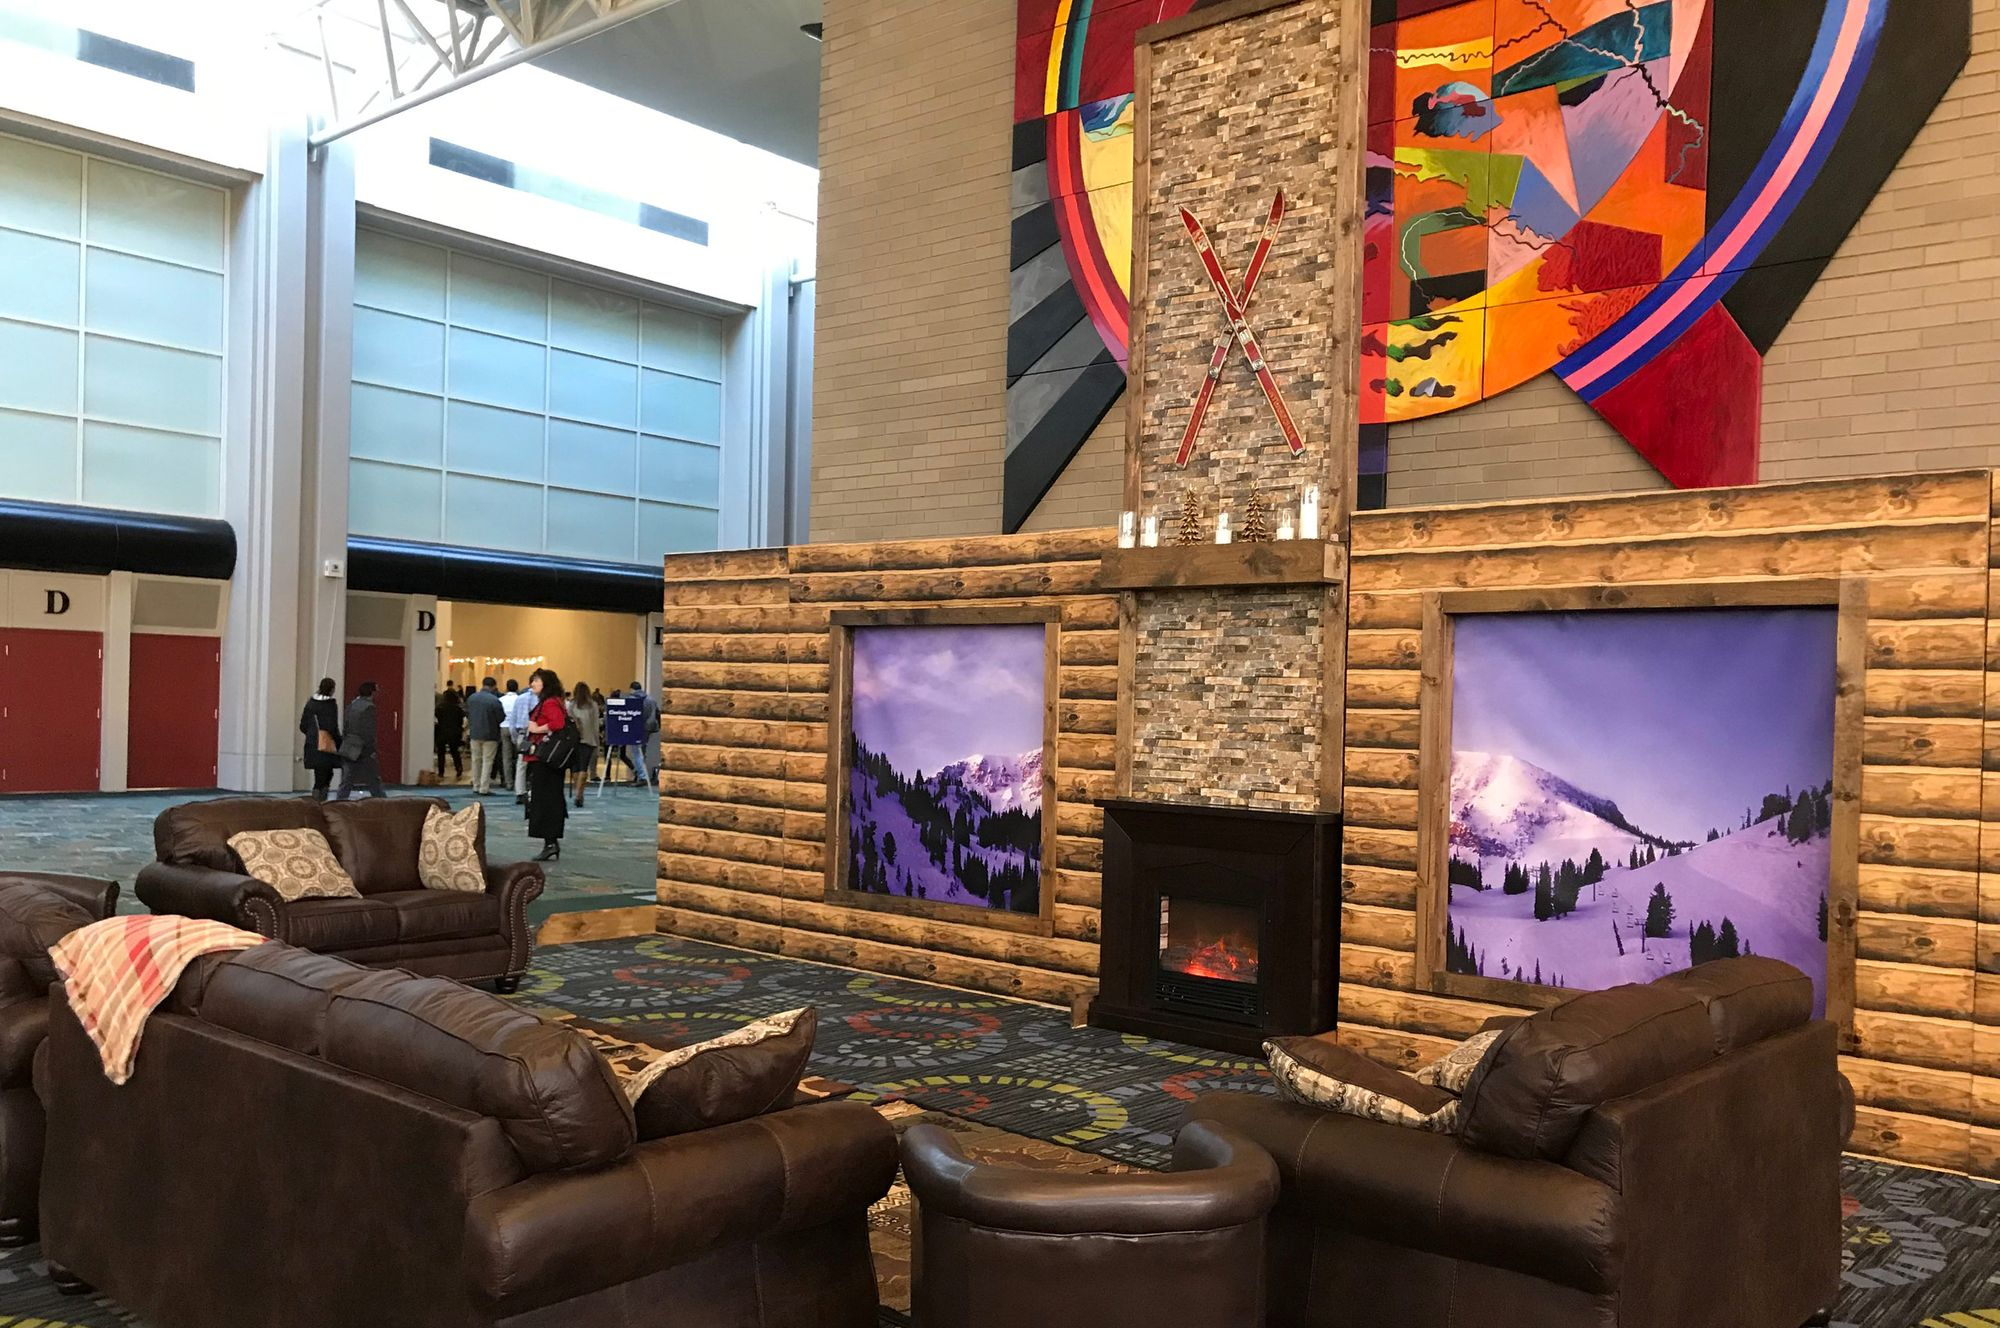 Higher_Education_User_Group_2018_Salt_Palace_Convention_Center_Salt_Lake_City_Utah_Ski_Cabin.jpg